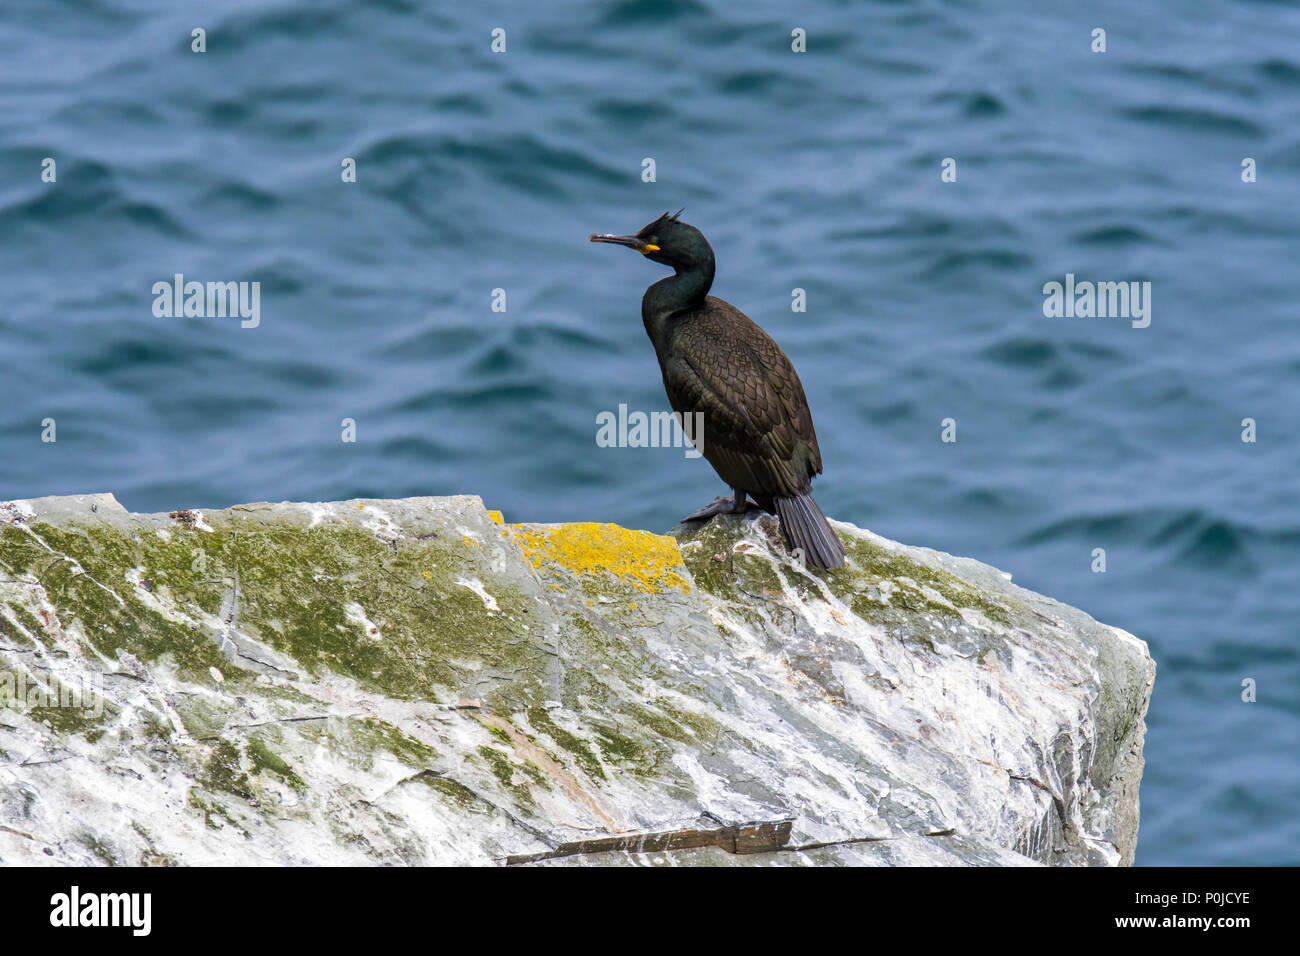 European shag / common shag (Phalacrocorax aristotelis) perched on rock covered in droppings, Shetland Islands, Scotland, UK - Stock Image